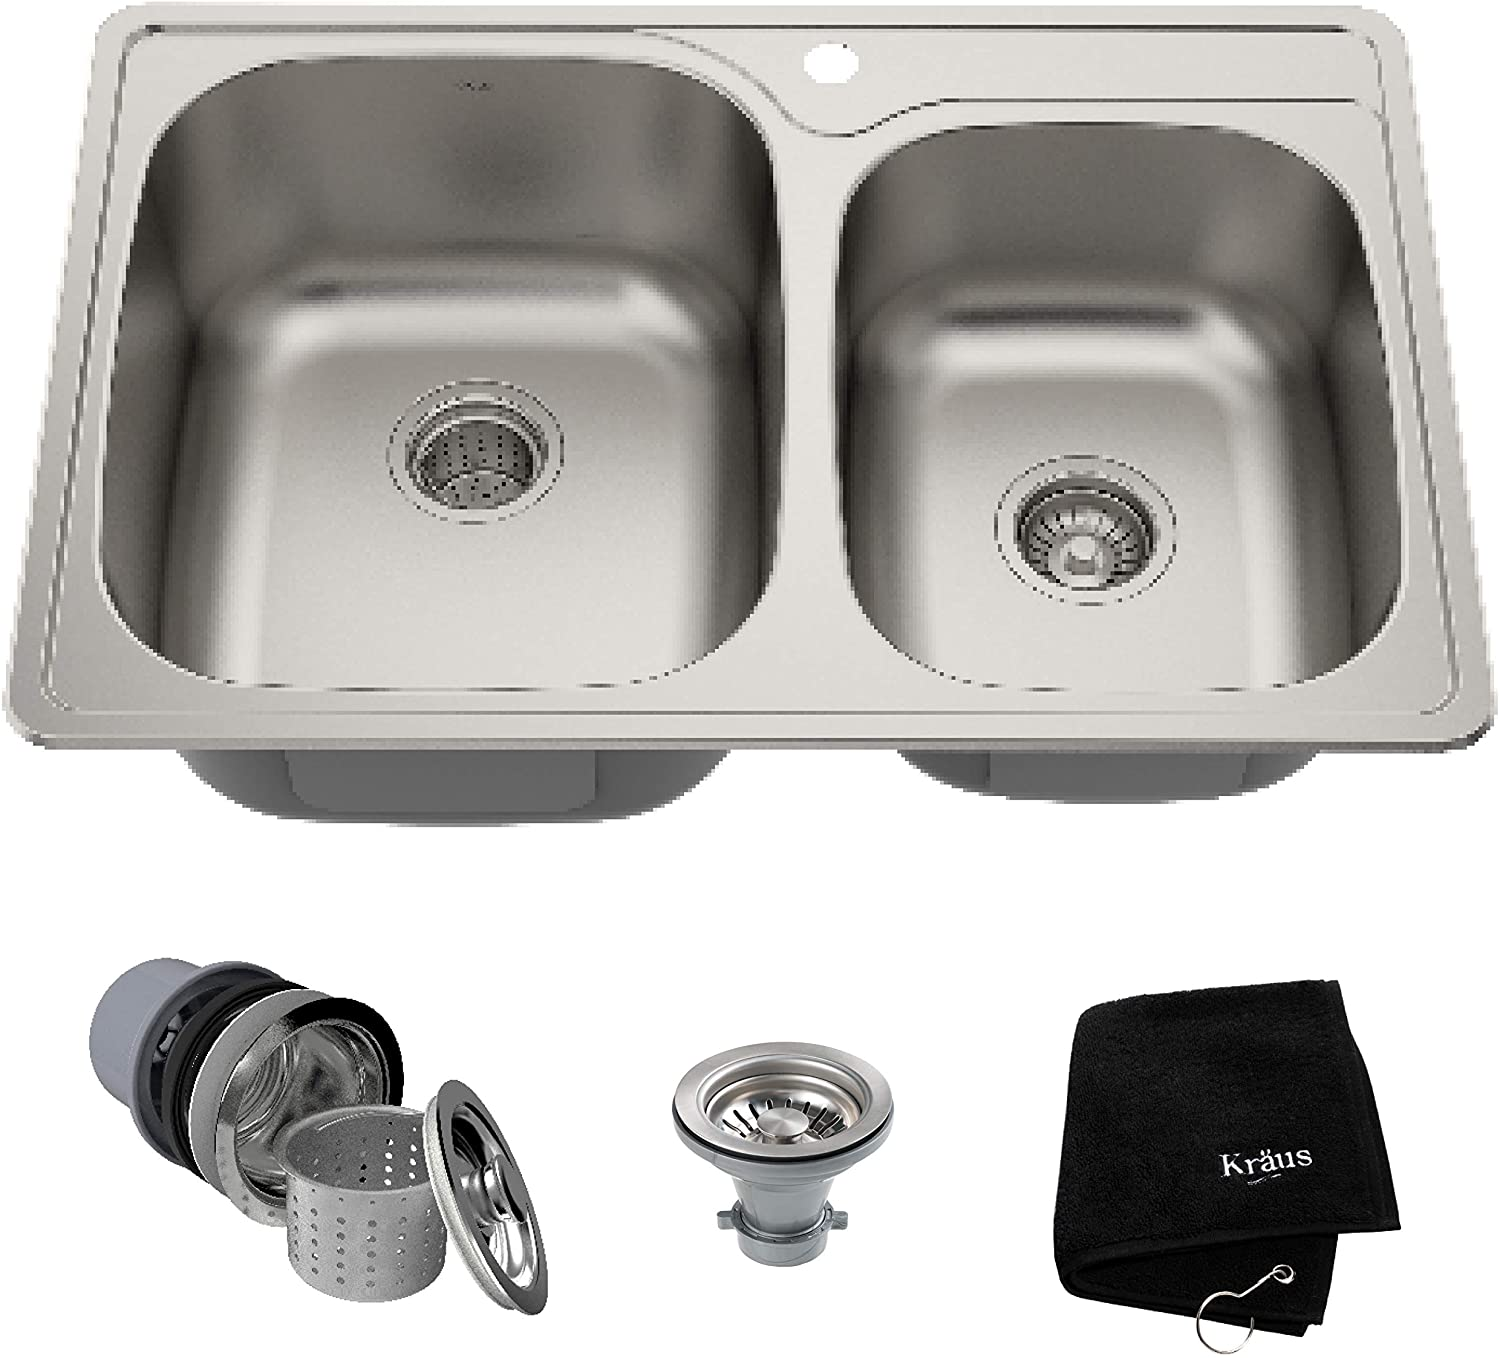 Kraus KTM32 Topmount Double Bowl Kitchen Sink, 33-Inch